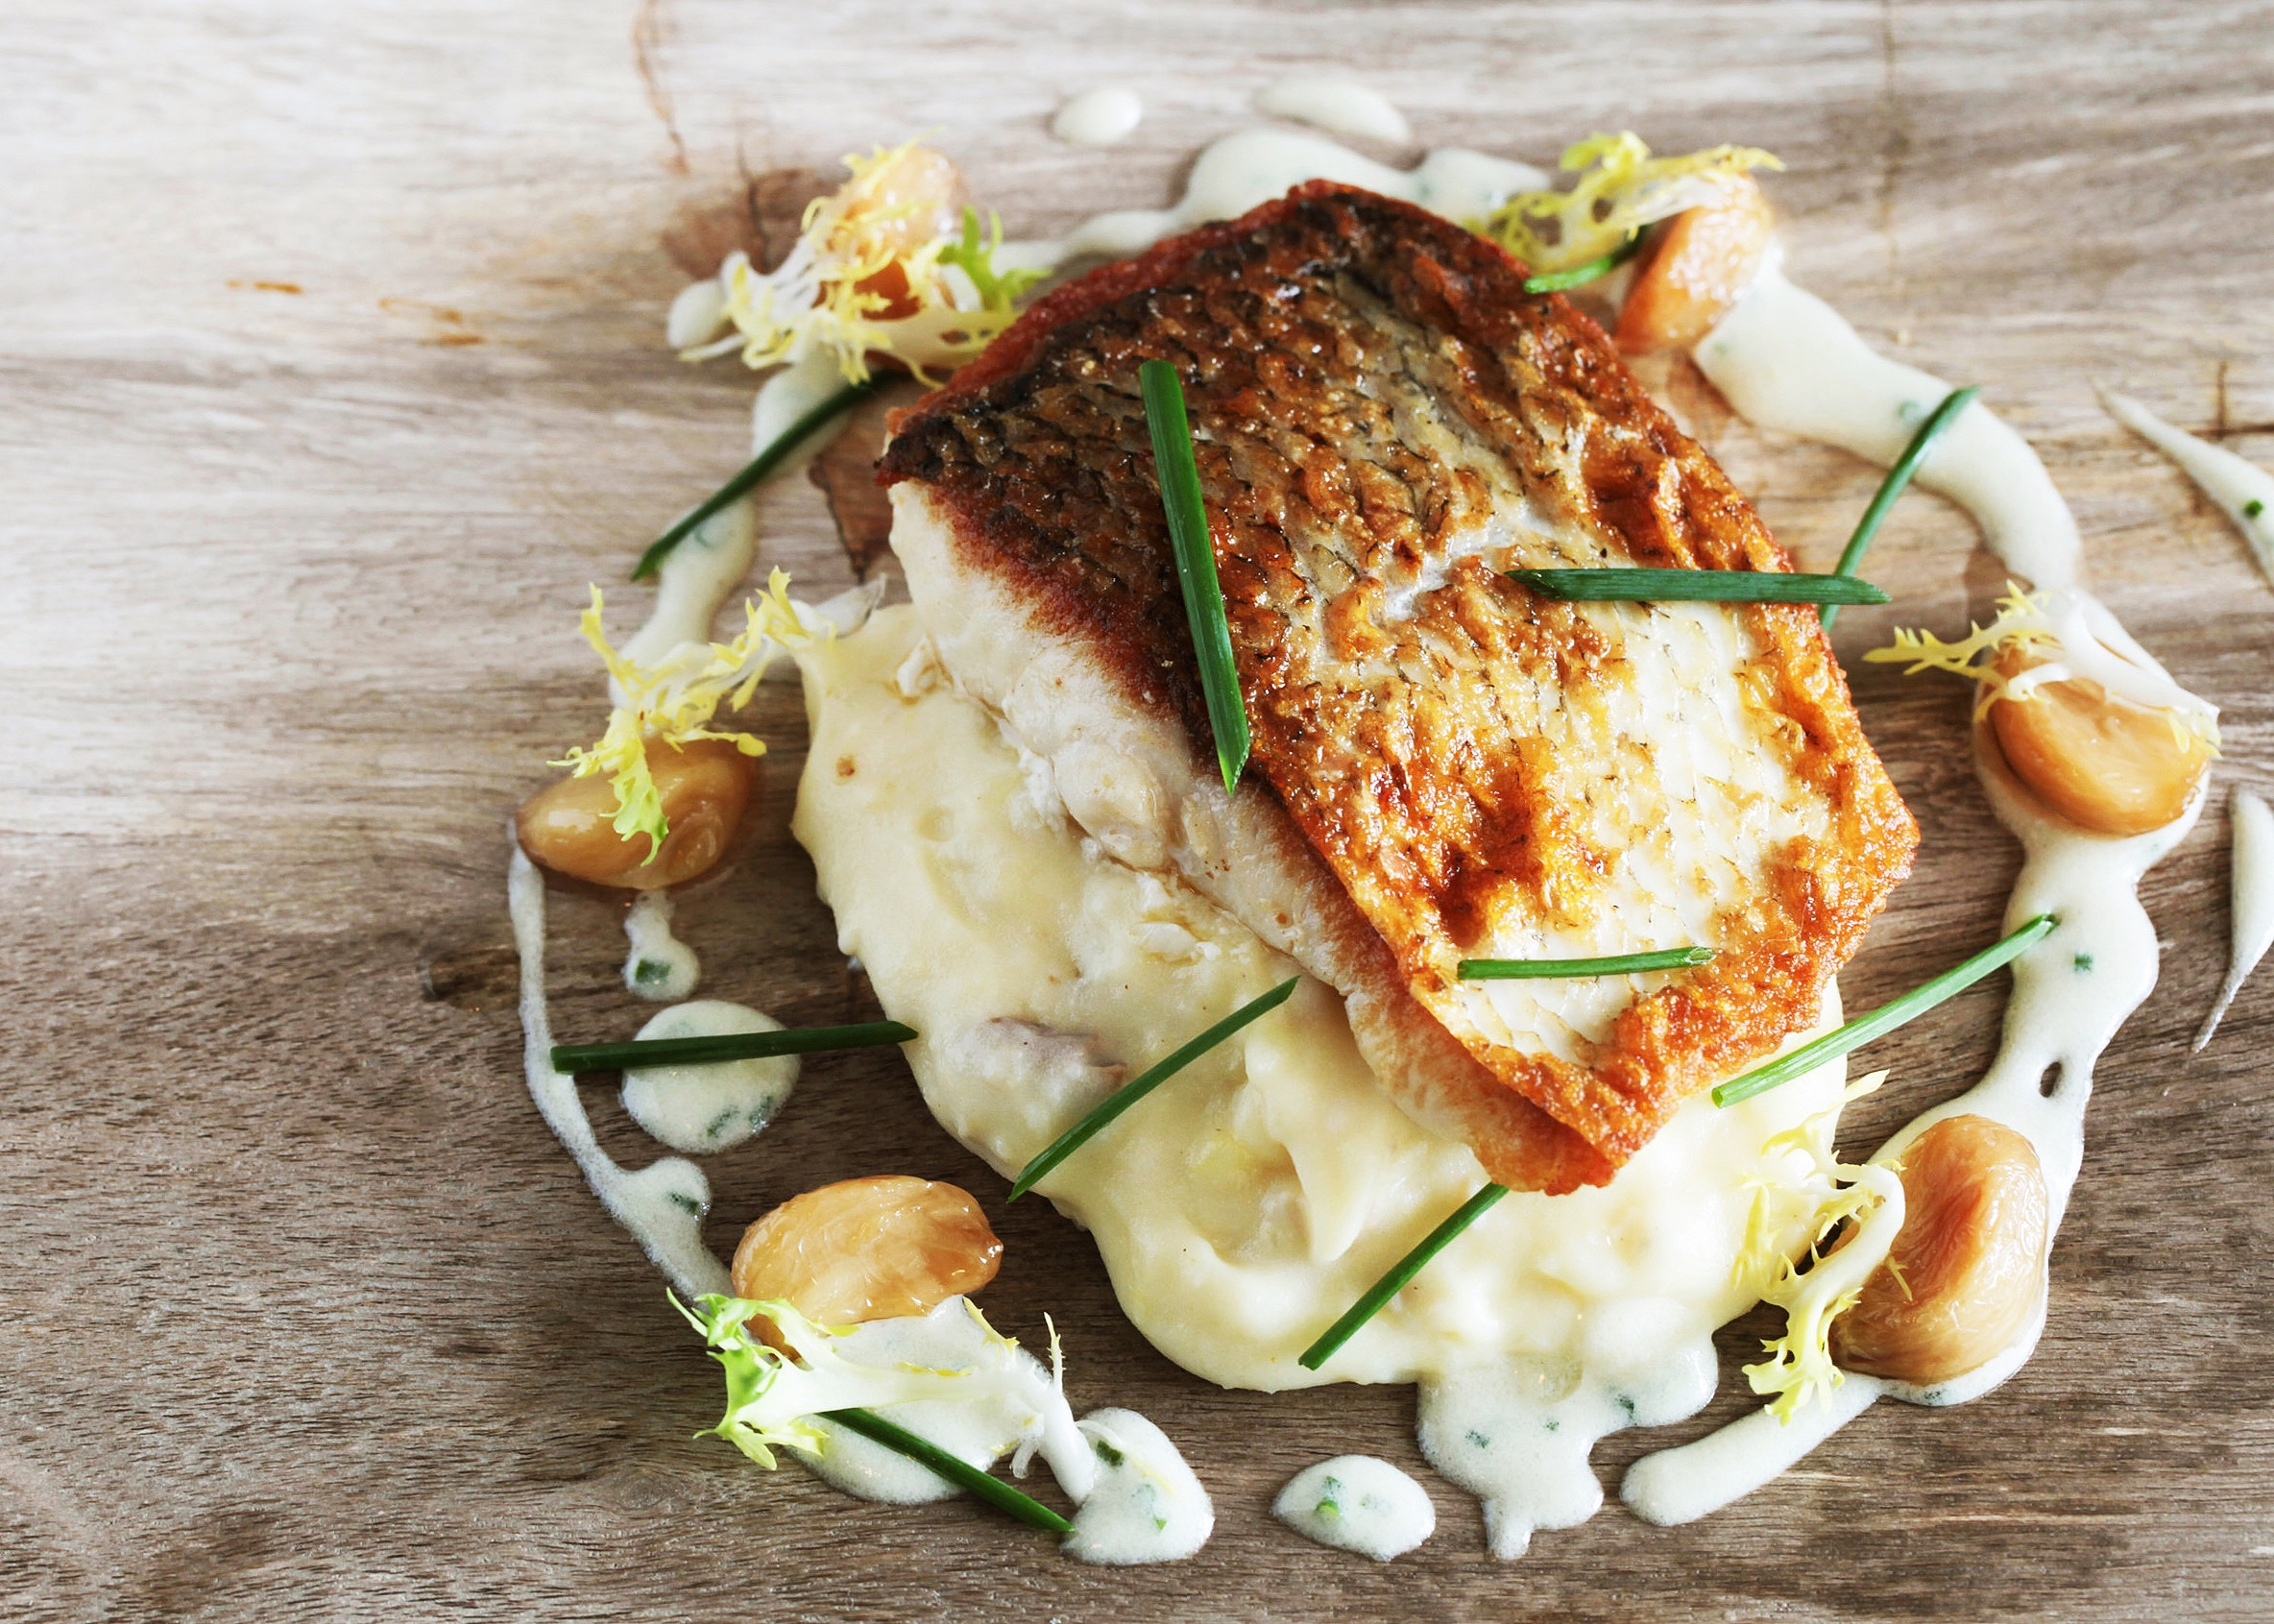 Pan seared sea bass on top of mashed potatoes with a dill sauce, roasted garlic and chive